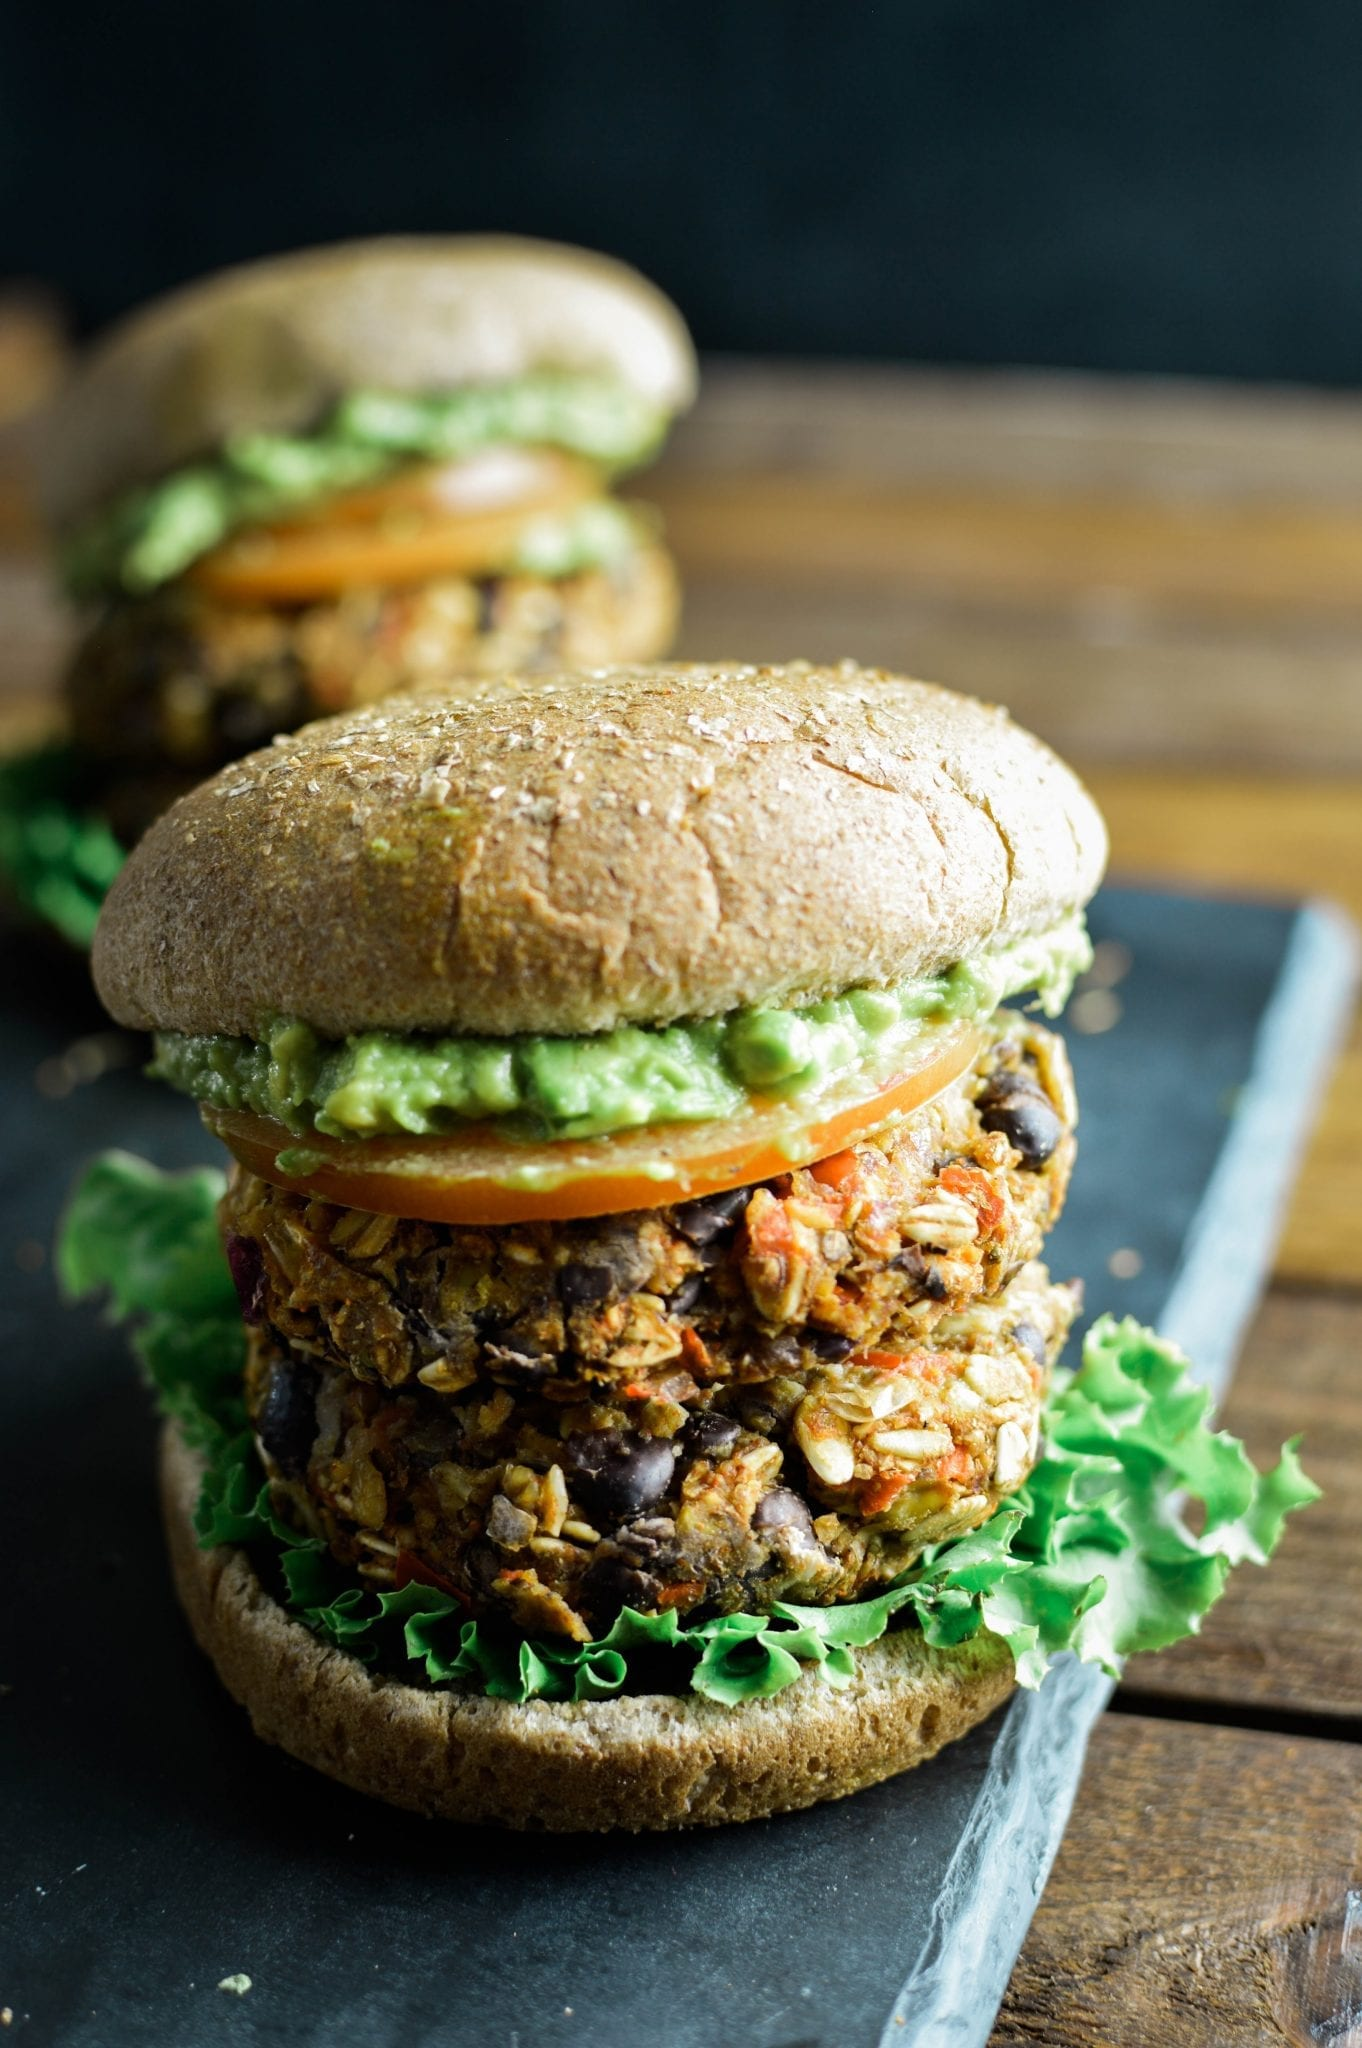 25-minute Hearty Vegan Black Bean Burger